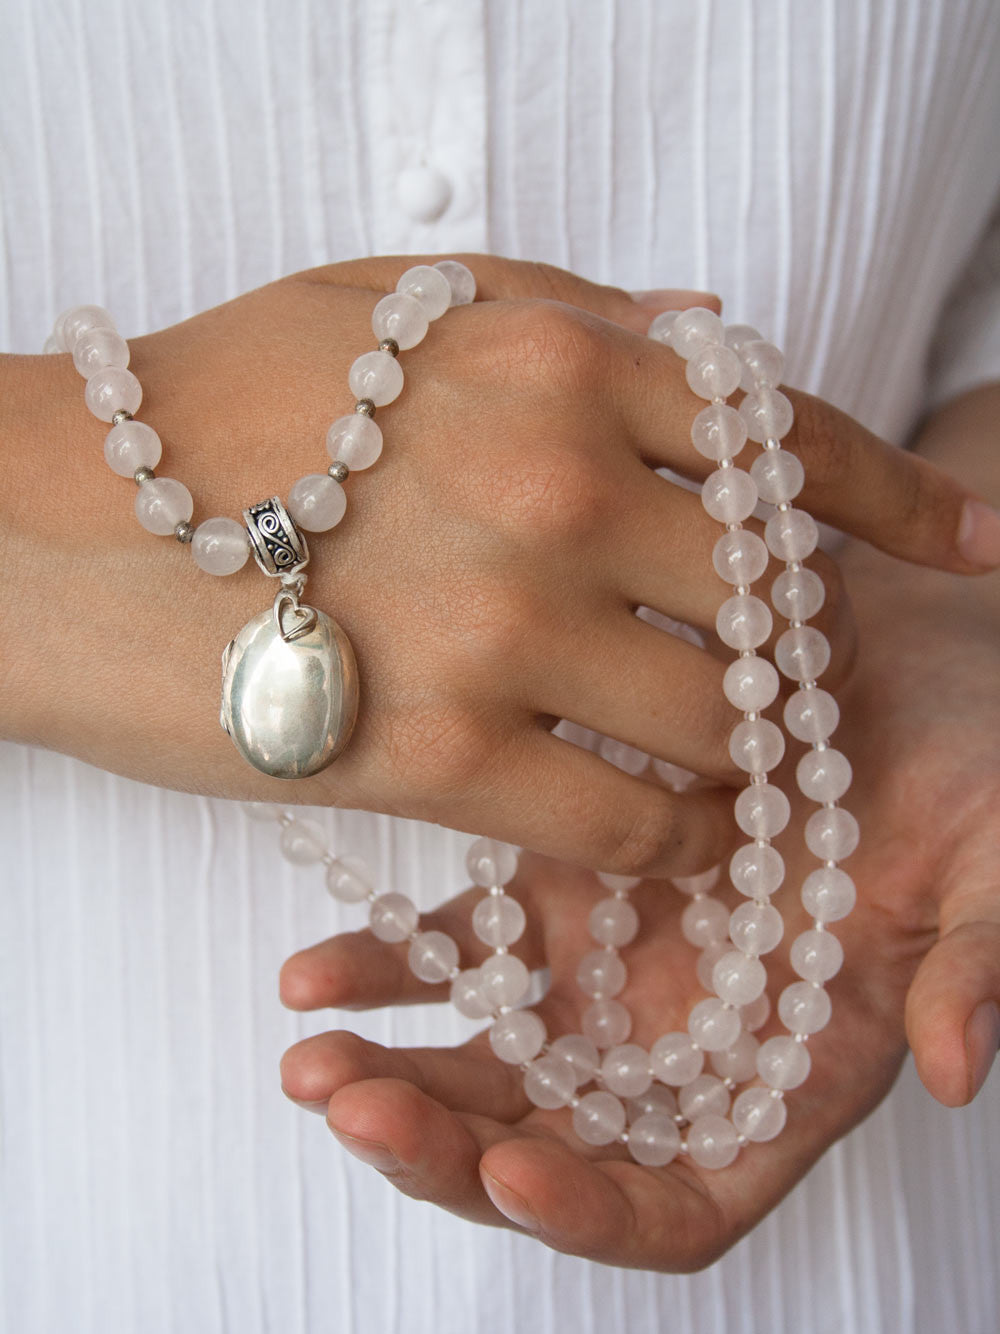 Eternal Love Mala, made with heart in rose quartz, has a silver etched Guru bead, & oval locket & heart: hand view